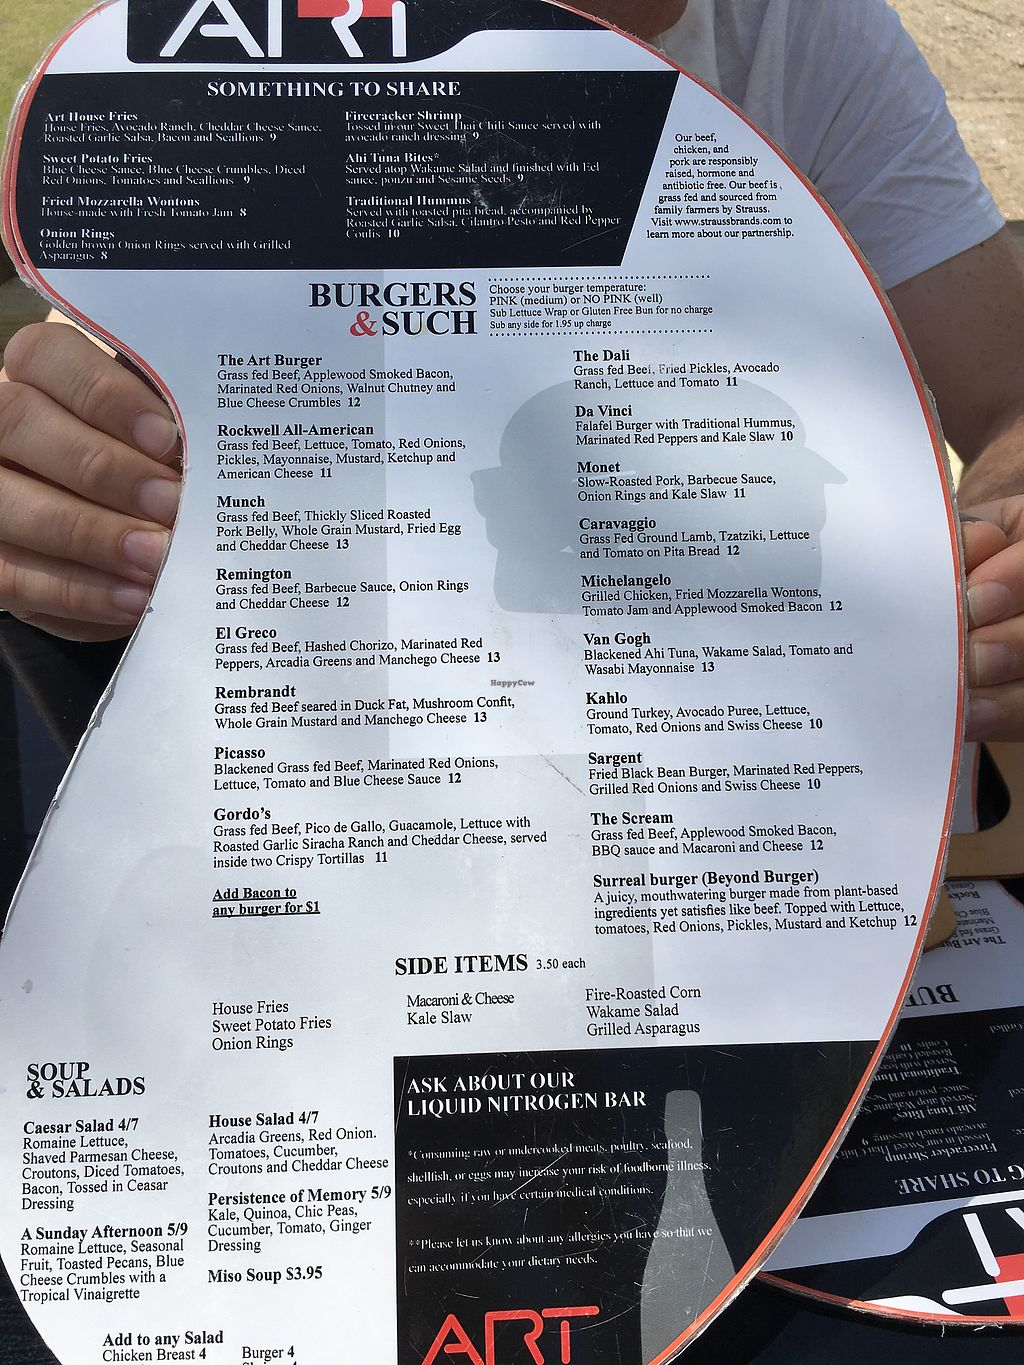 """Photo of Art Burger Sushi Bar  by <a href=""""/members/profile/AnnFromIllinois"""">AnnFromIllinois</a> <br/>The menu <br/> April 15, 2018  - <a href='/contact/abuse/image/117742/386437'>Report</a>"""